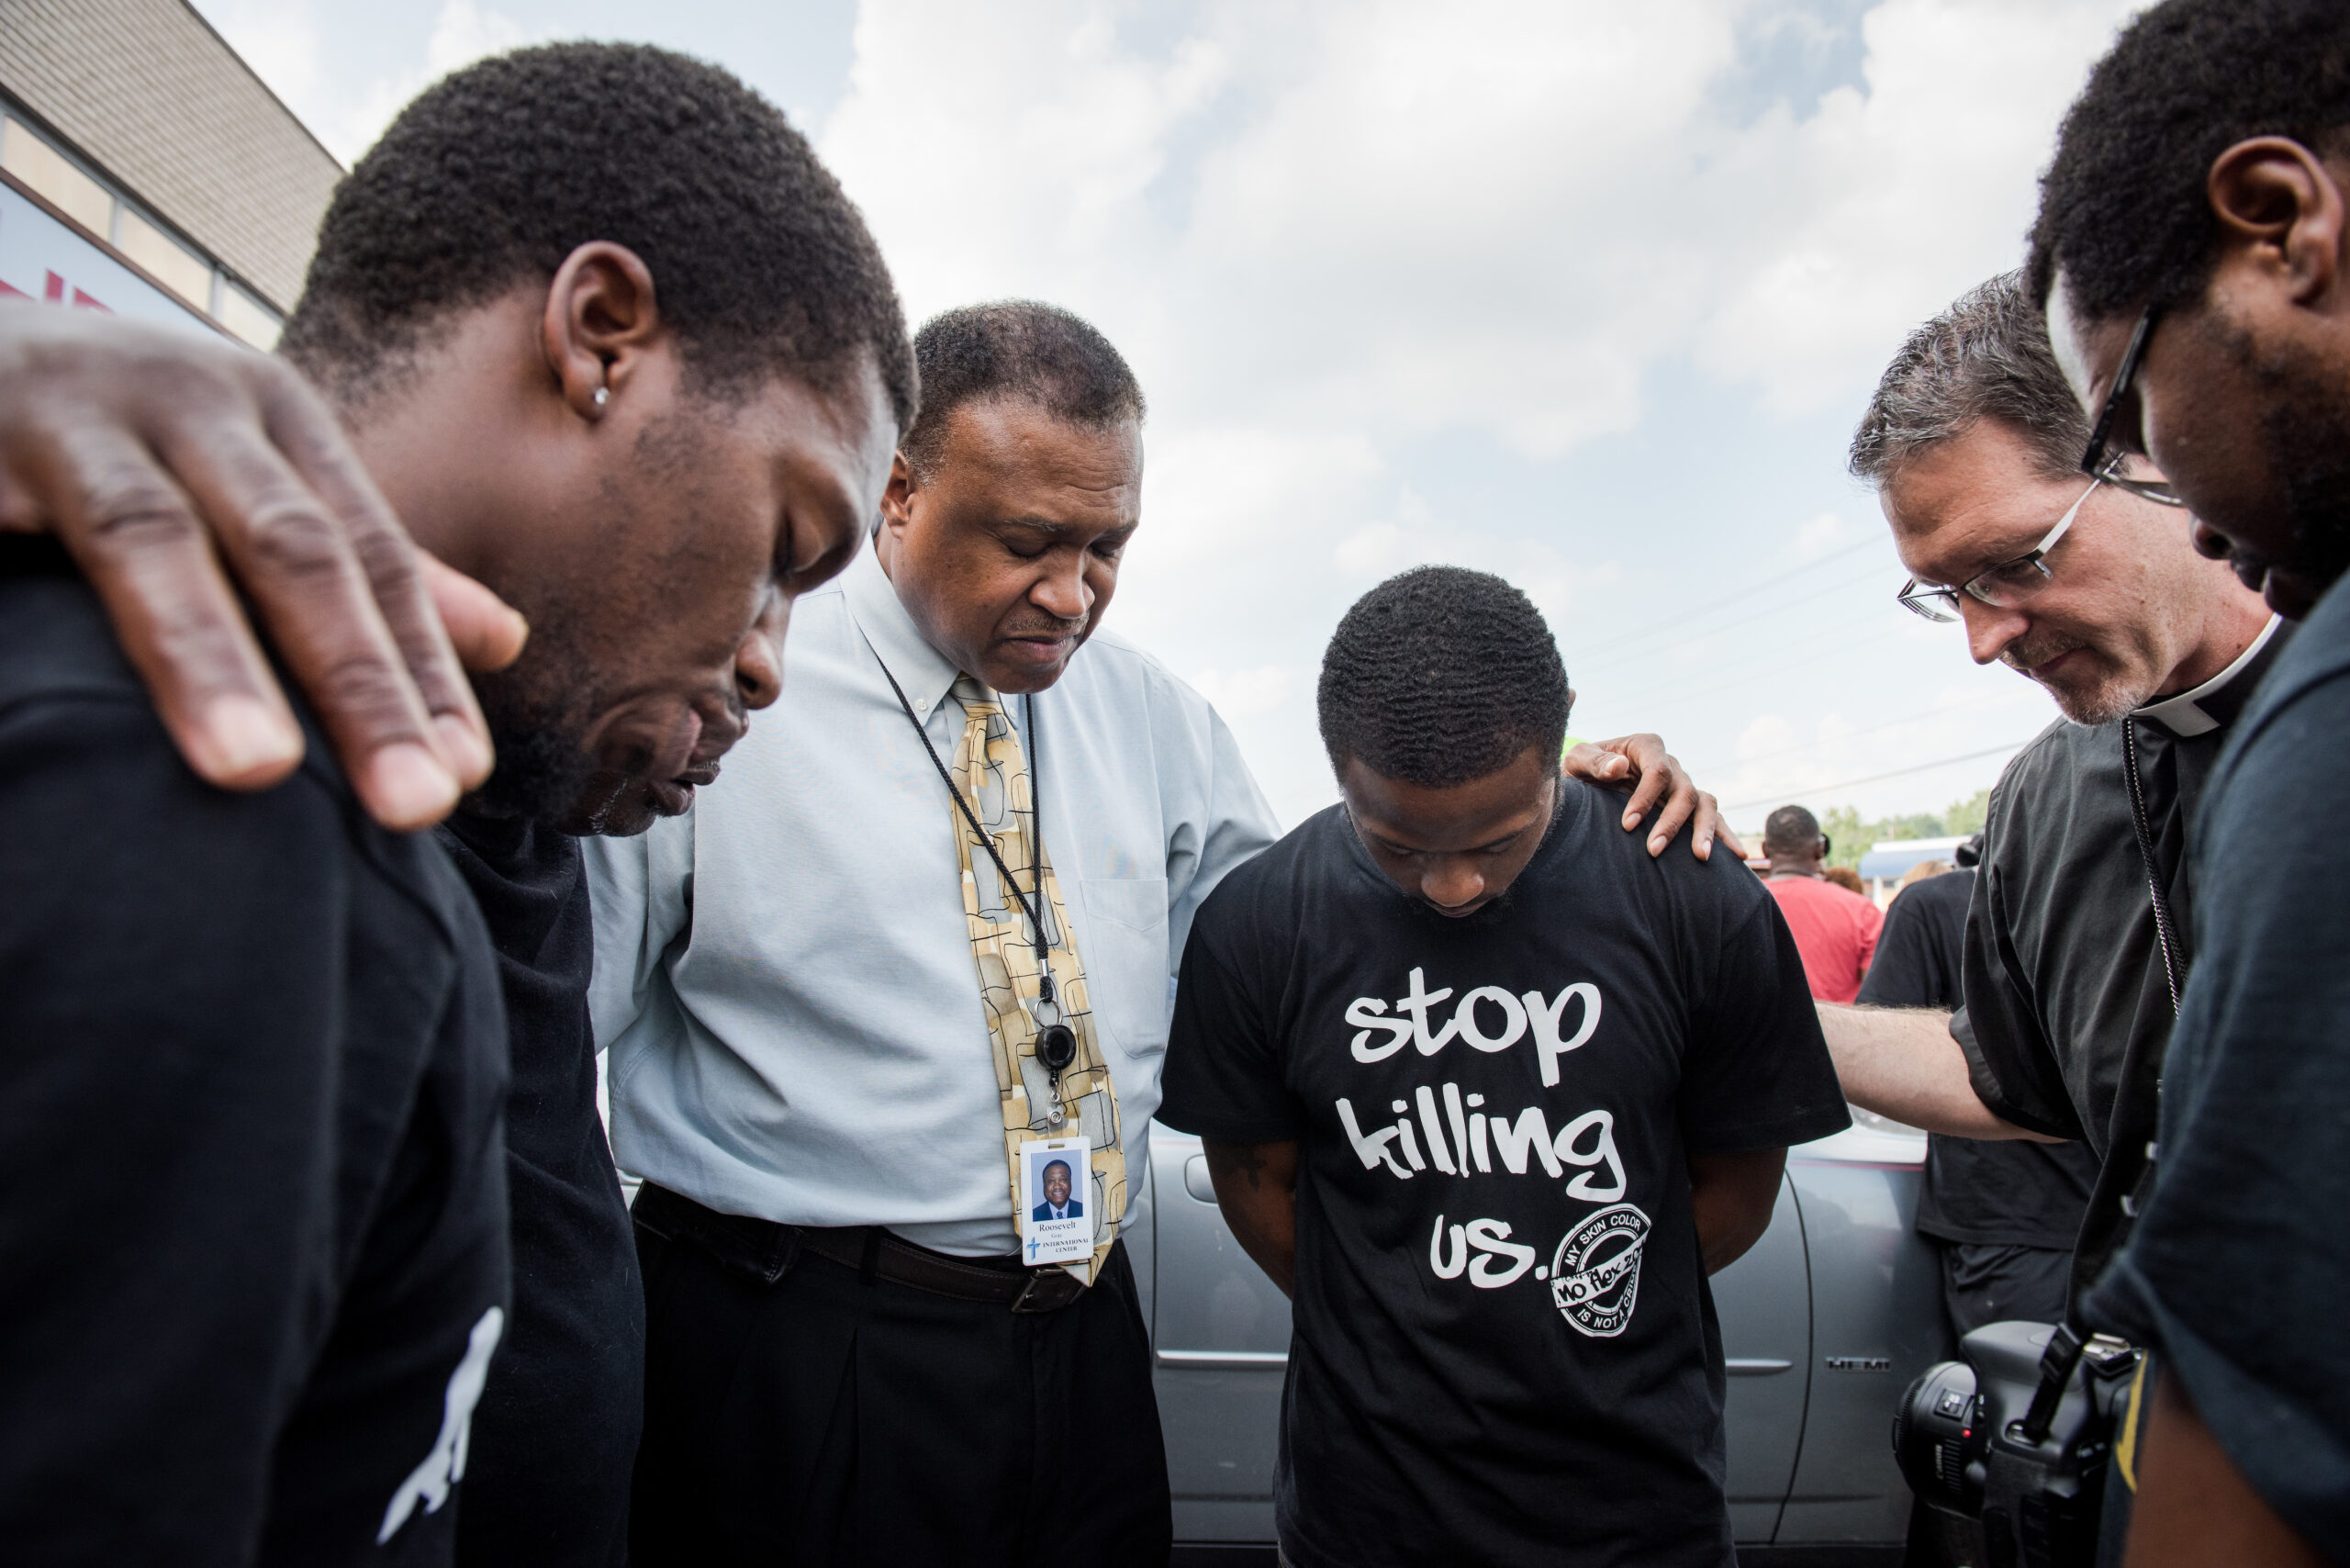 The Rev. Roosevelt Gray, director of LCMS Black Ministry (with tie), and the Rev. Steve Schave, director of LCMS Urban and Inner City Mission (second from right) pray with others along West Florissant Avenue on Monday, August 18, 2014, in Ferguson, Mo. LCMS Communications/Erik M. Lunsford